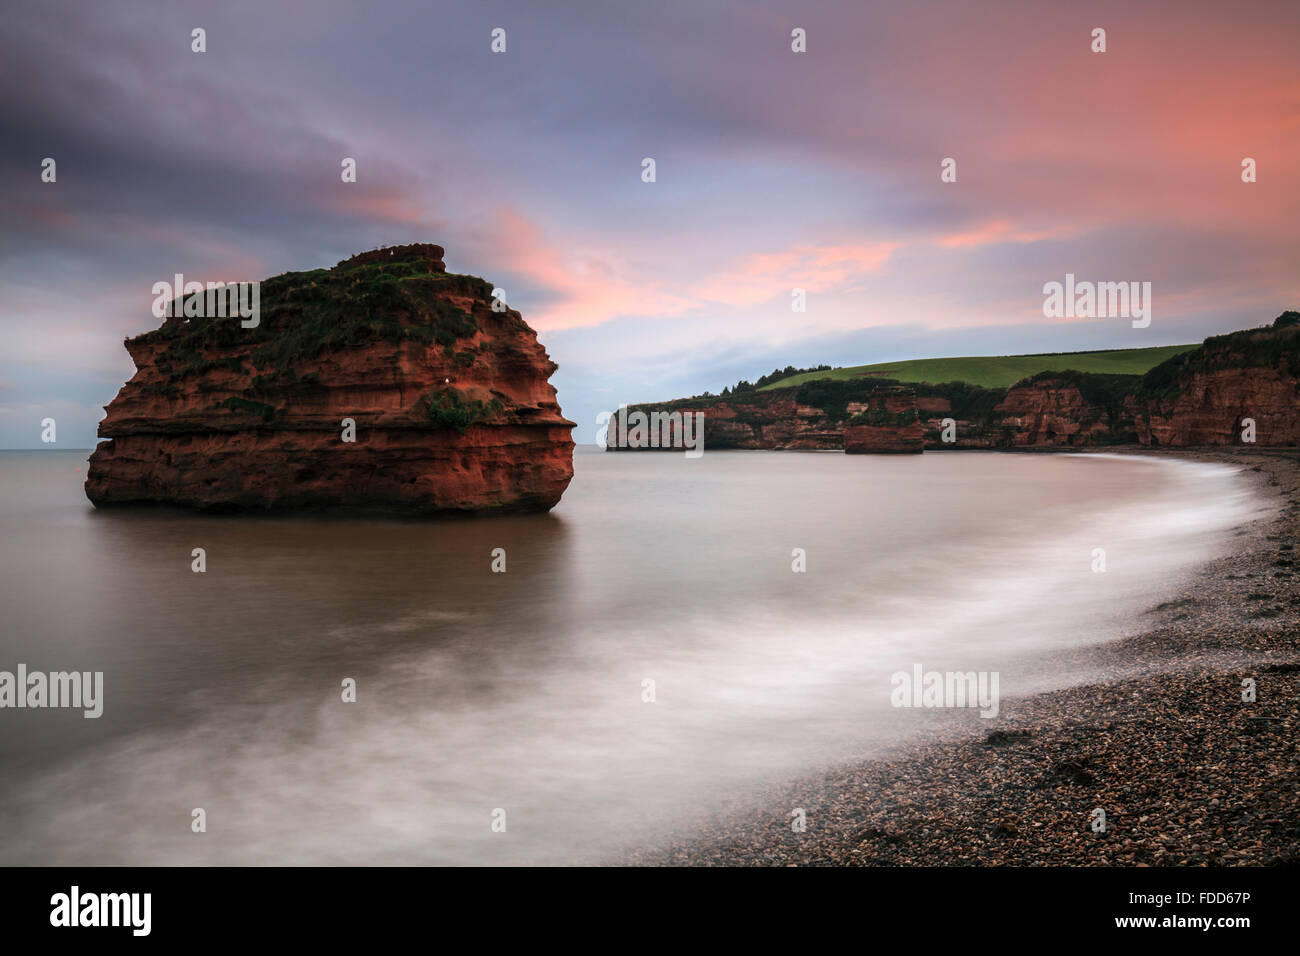 A sea stack at Ladram Bay near Sidmouth in South East Devon captured at sunset. - Stock Image